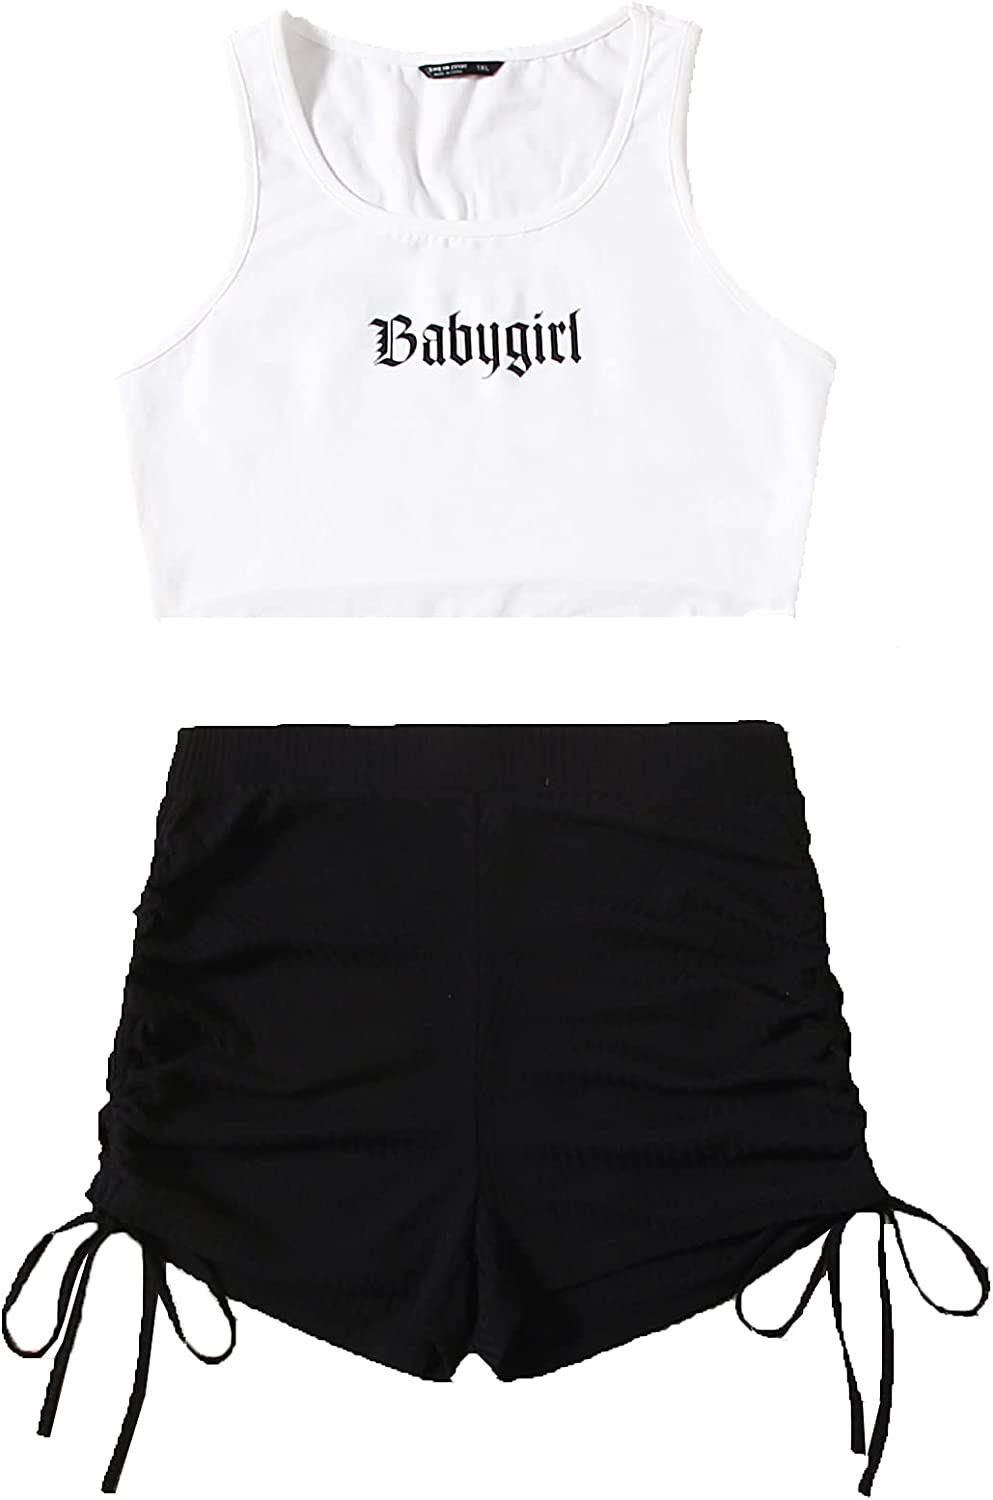 SweatyRocks Women's Plus Size Letter Graphic Tank Top and Ruched Drawstring Shorts Set